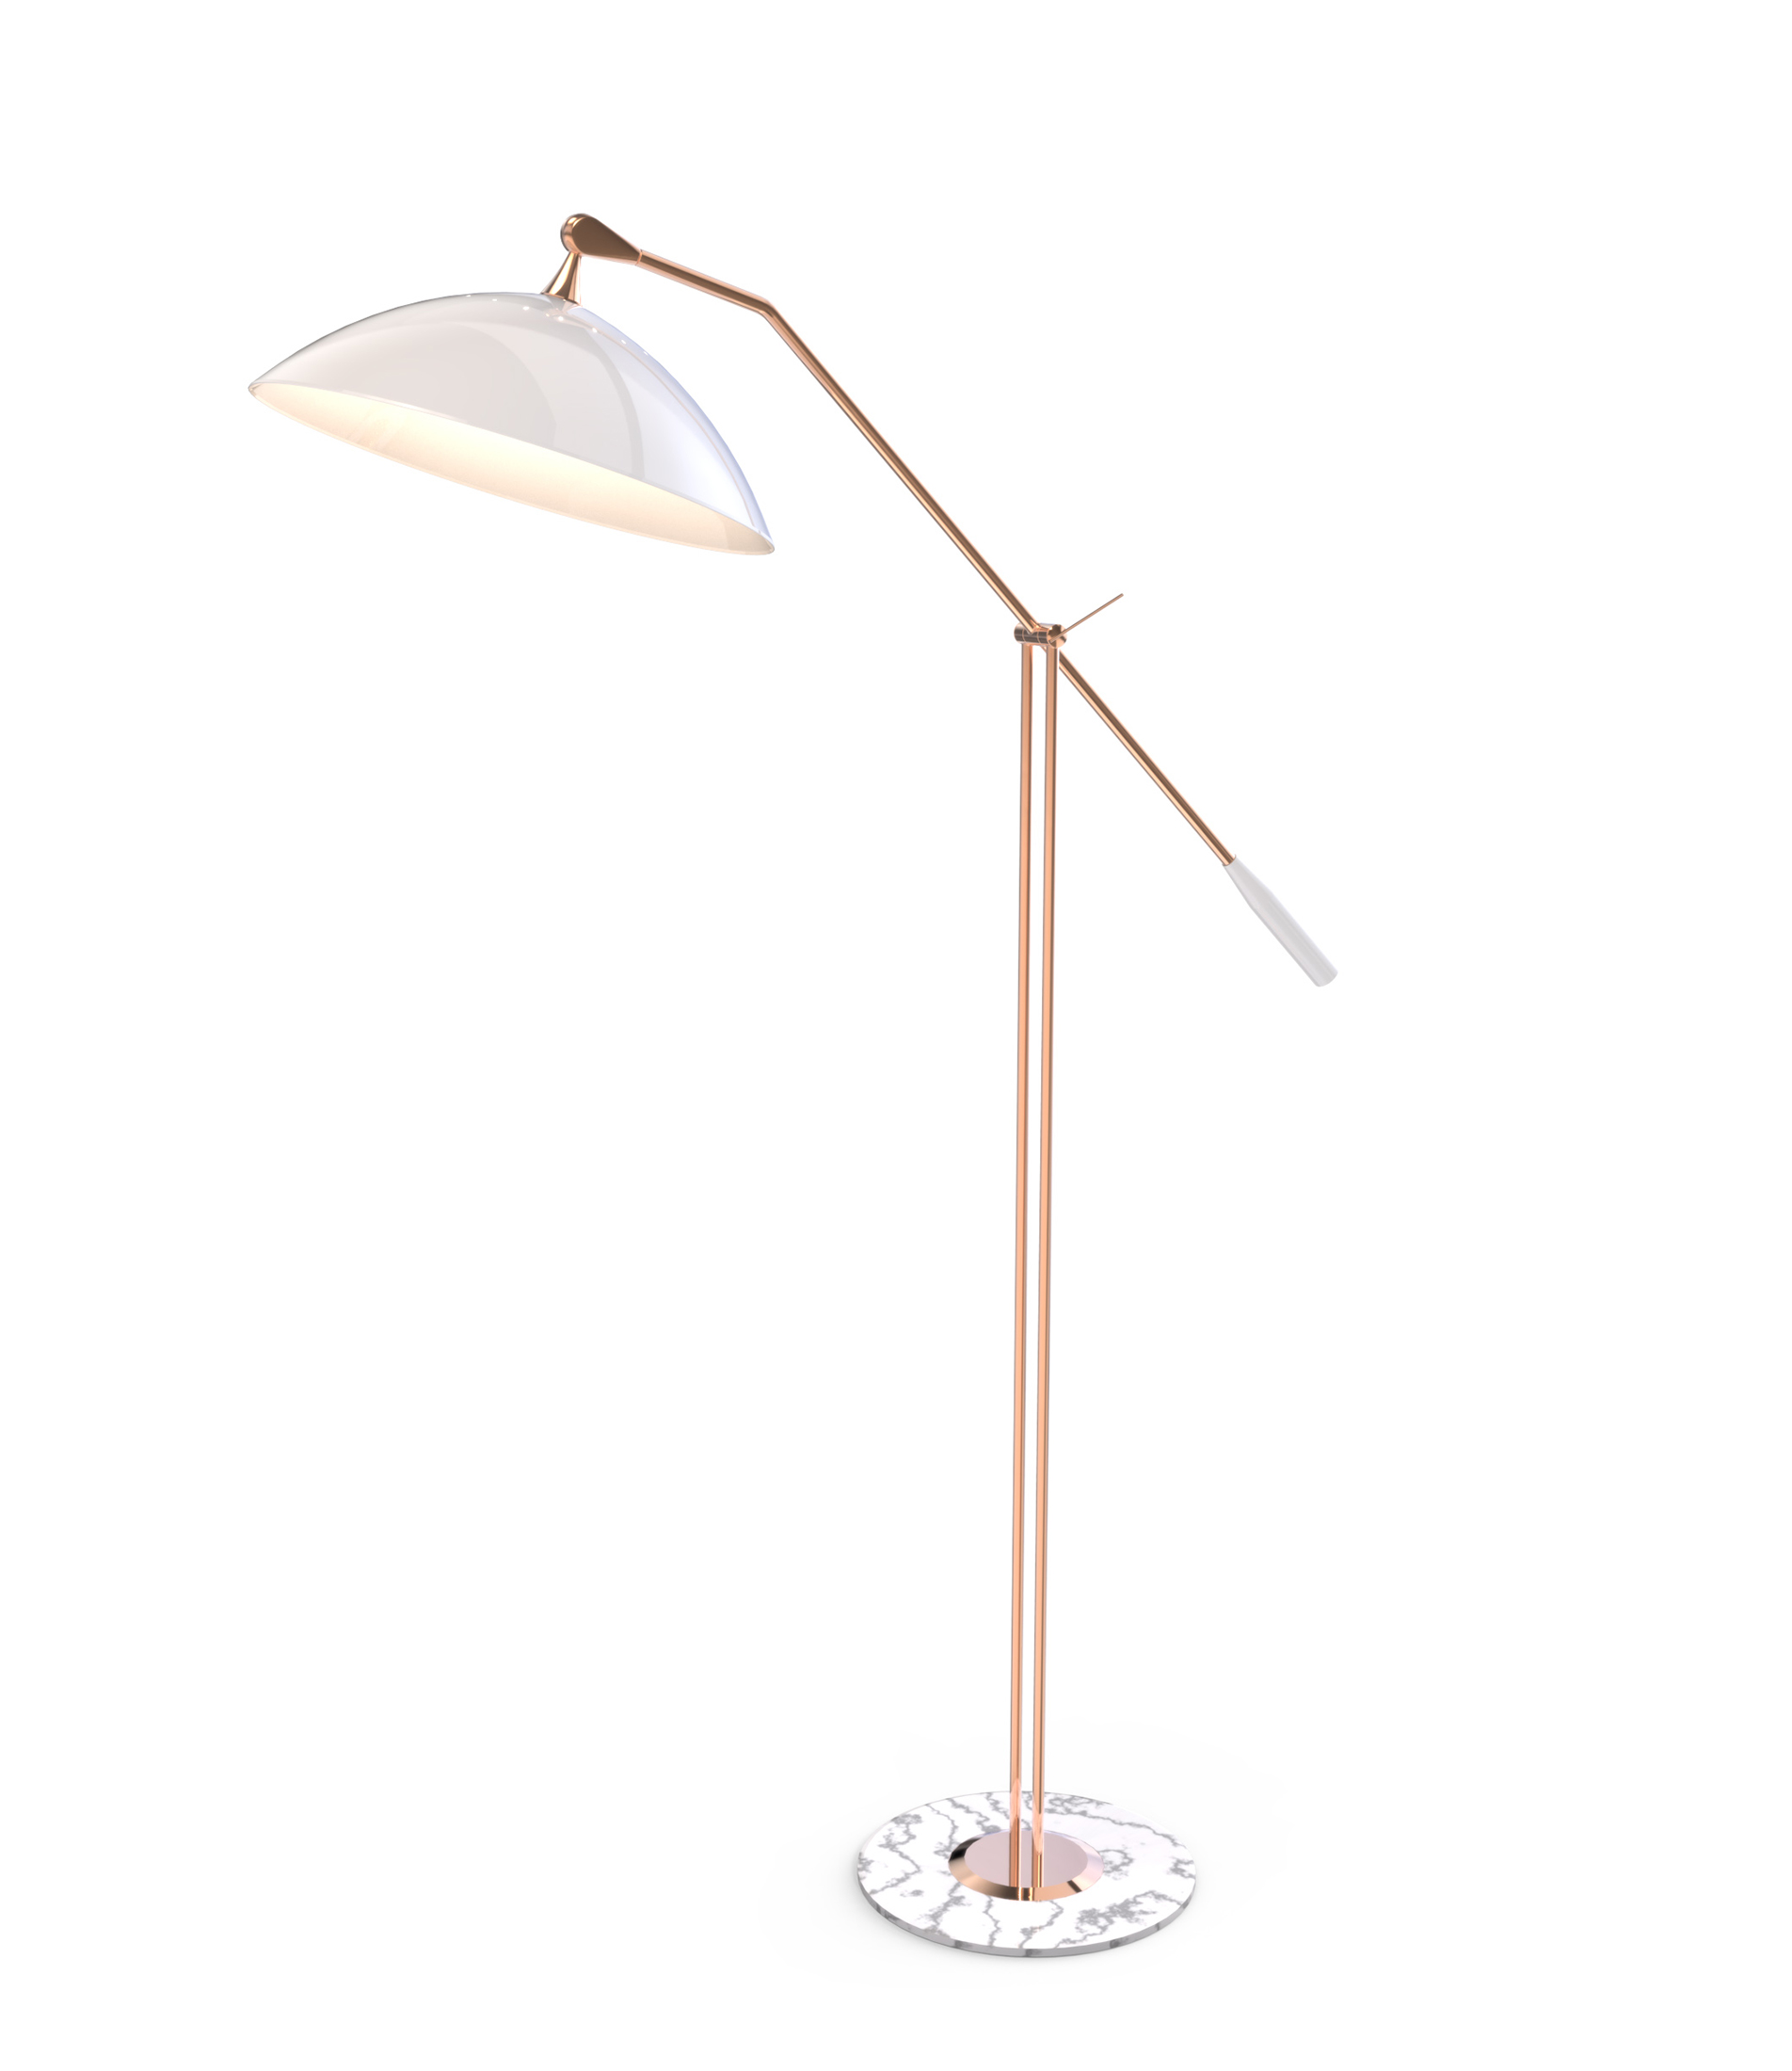 Floor Lamps Essentials An Arc Floor Lamp Ideal for Every Style (1) arc floor lamp Floor Lamps Essentials: An Arc Floor Lamp Ideal for Every Style Floor Lamps Essentials An Arc Floor Lamp Ideal for Every Style 4